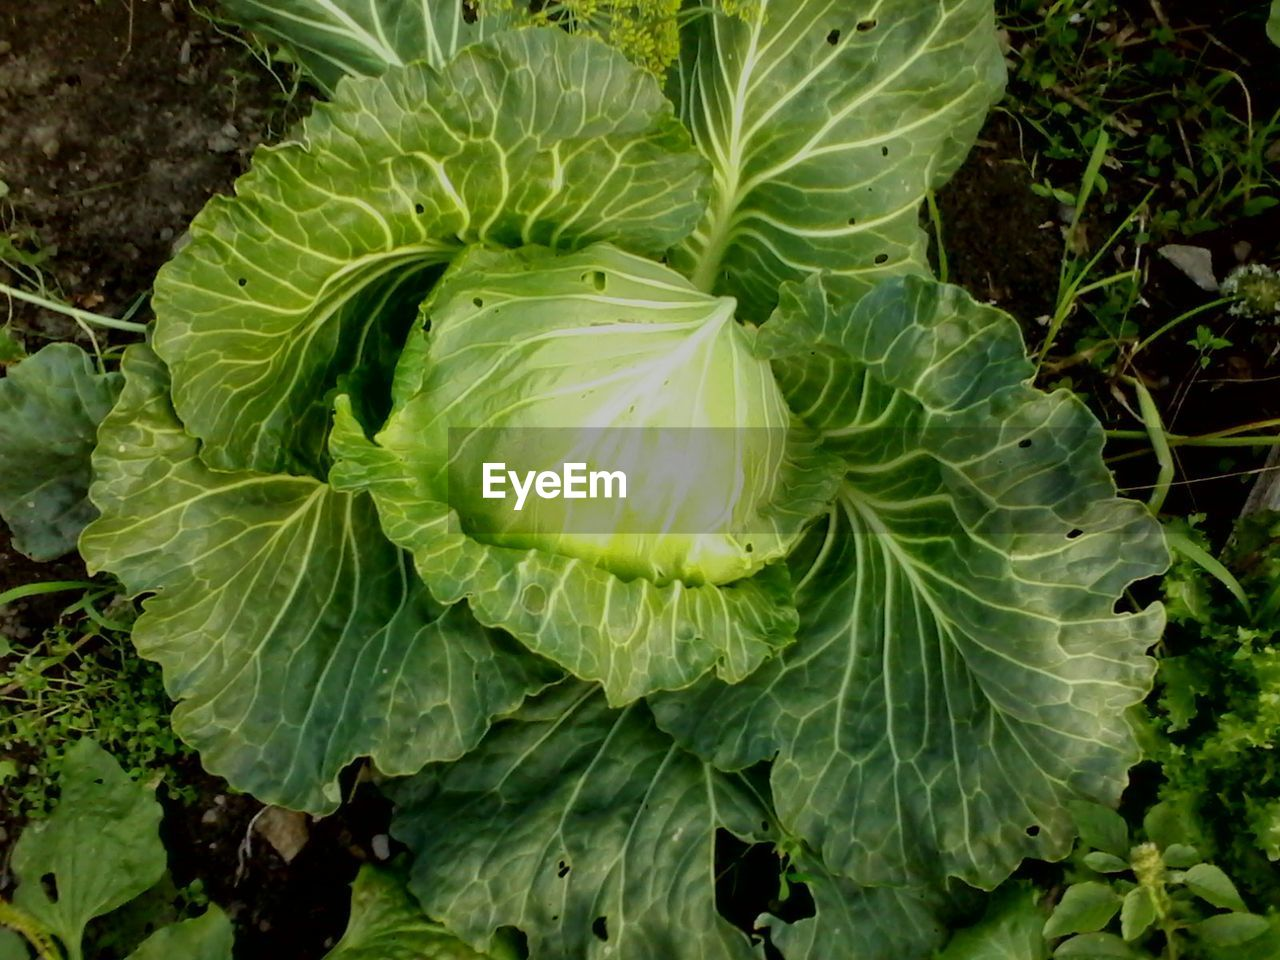 green color, growth, plant part, leaf, plant, beauty in nature, close-up, no people, freshness, nature, food, food and drink, healthy eating, vegetable, day, high angle view, outdoors, flower, water, land, marine